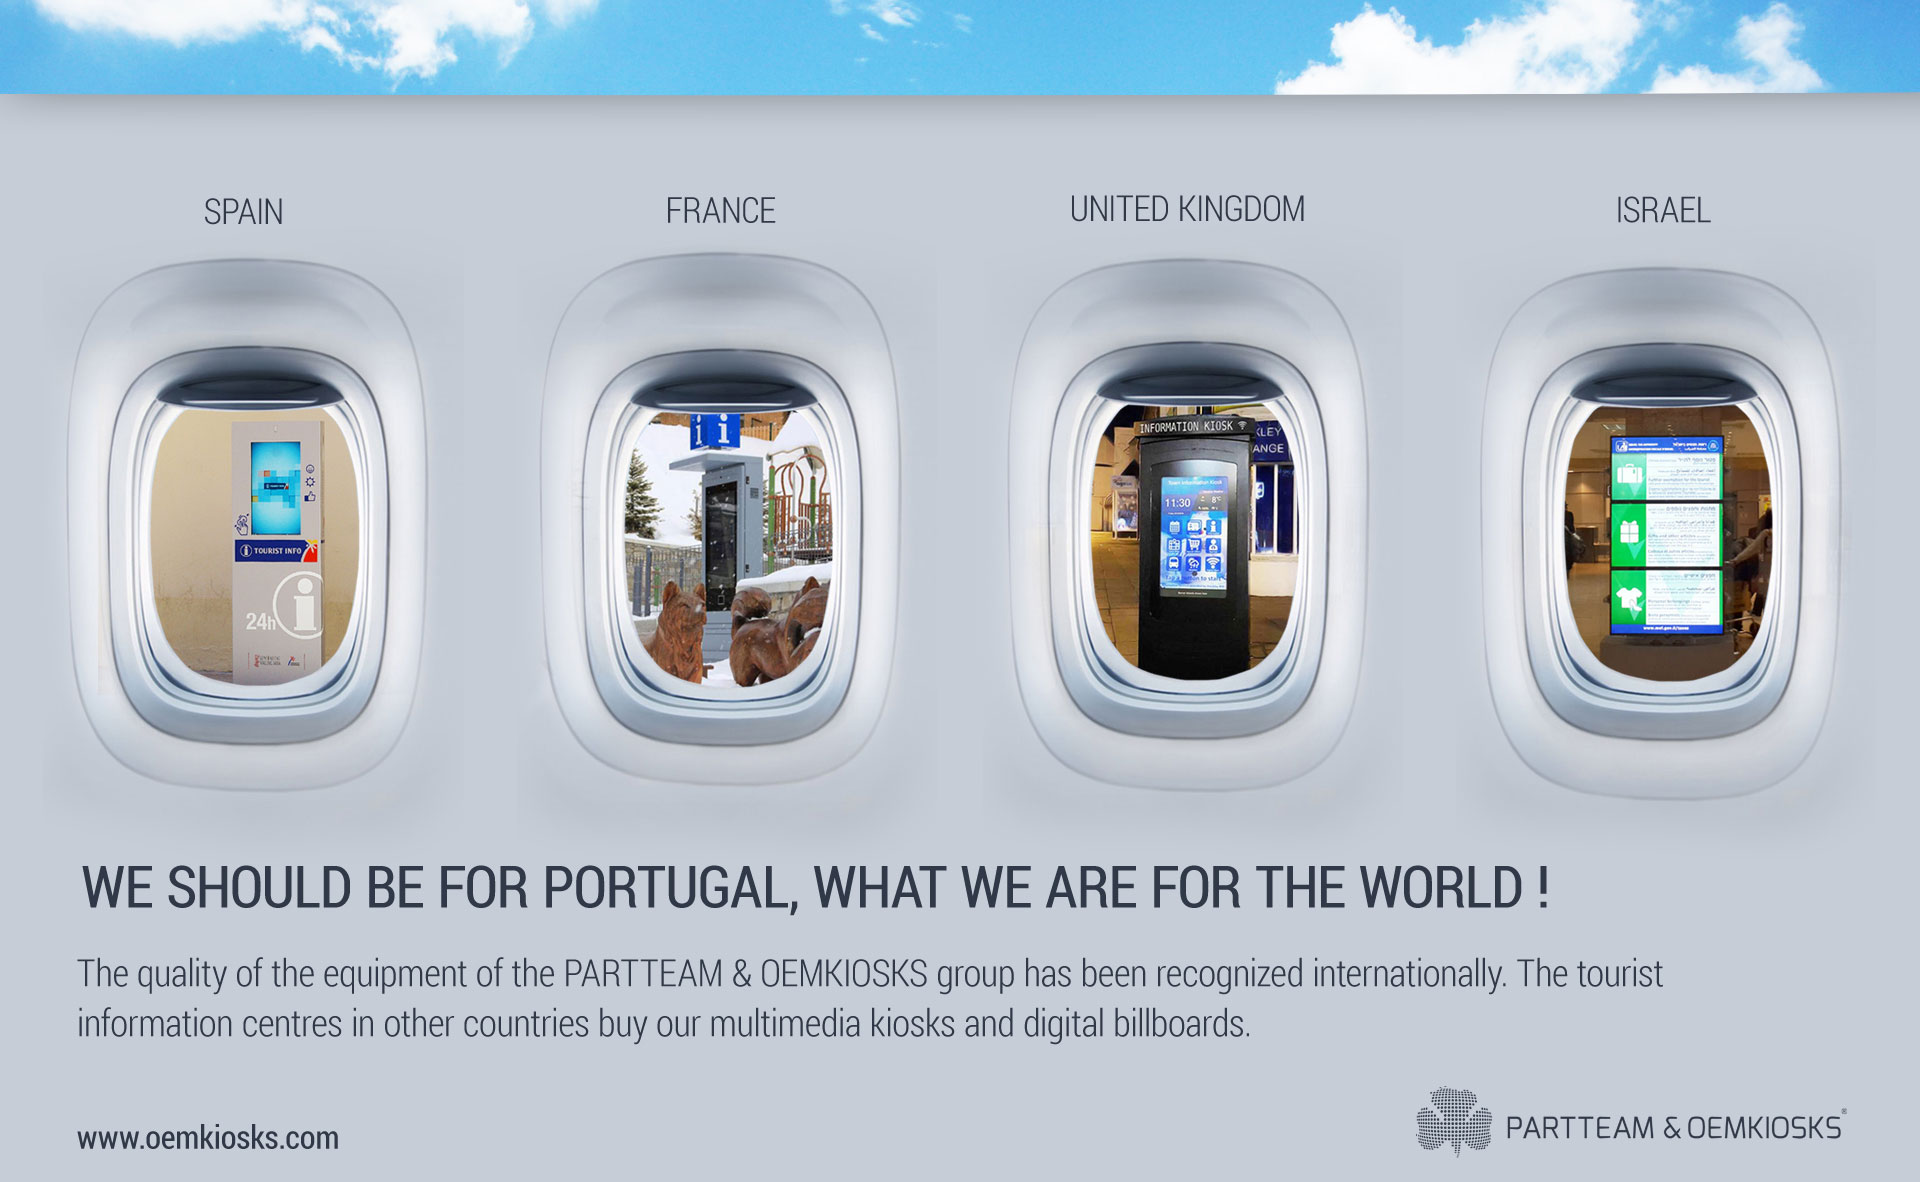 we should be for portugal, what we are for the world